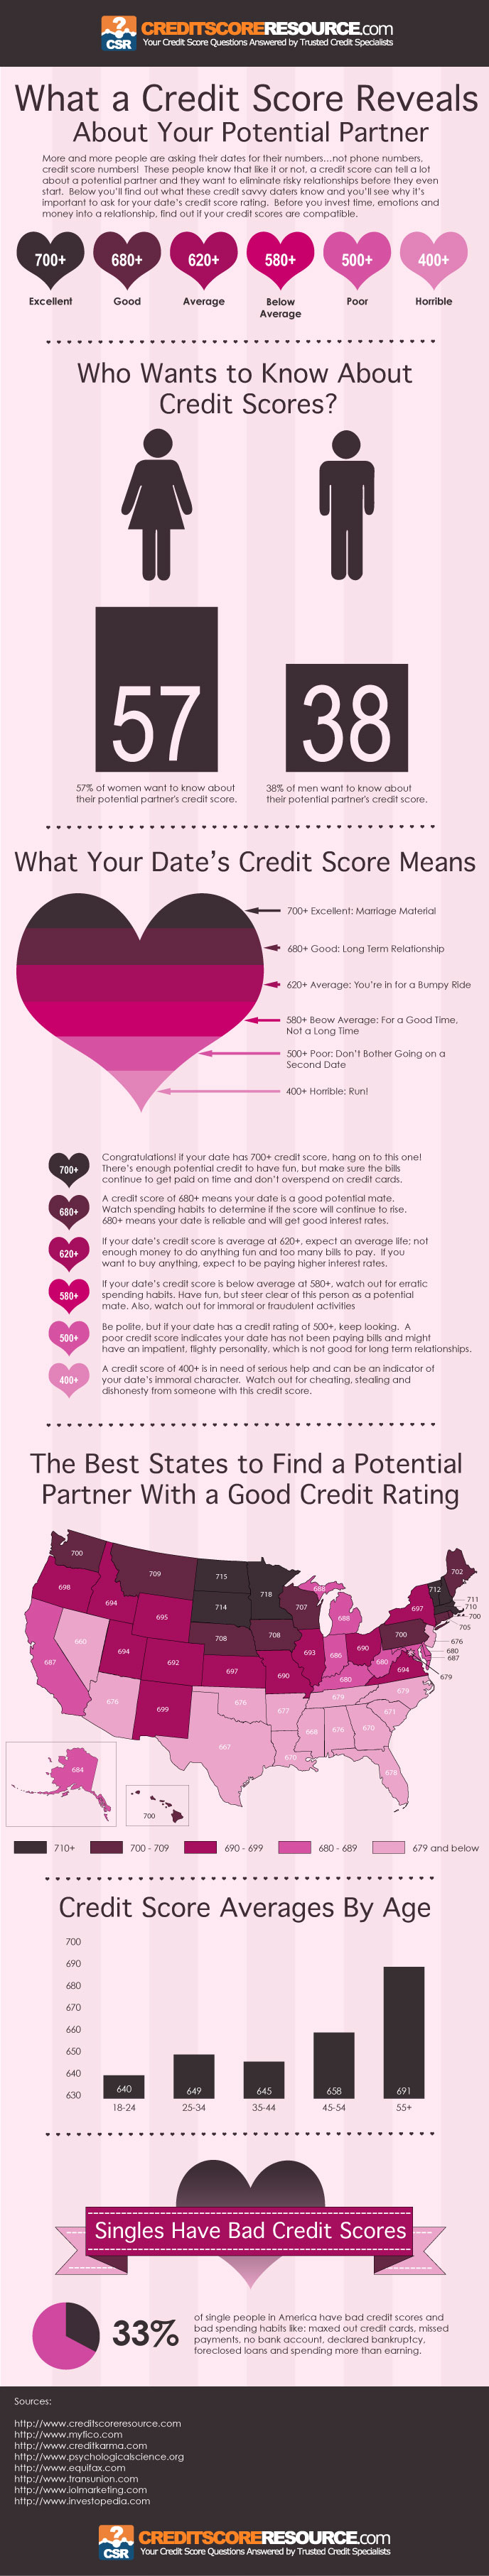 What a Credit Score Reveals About Your Potential Partner